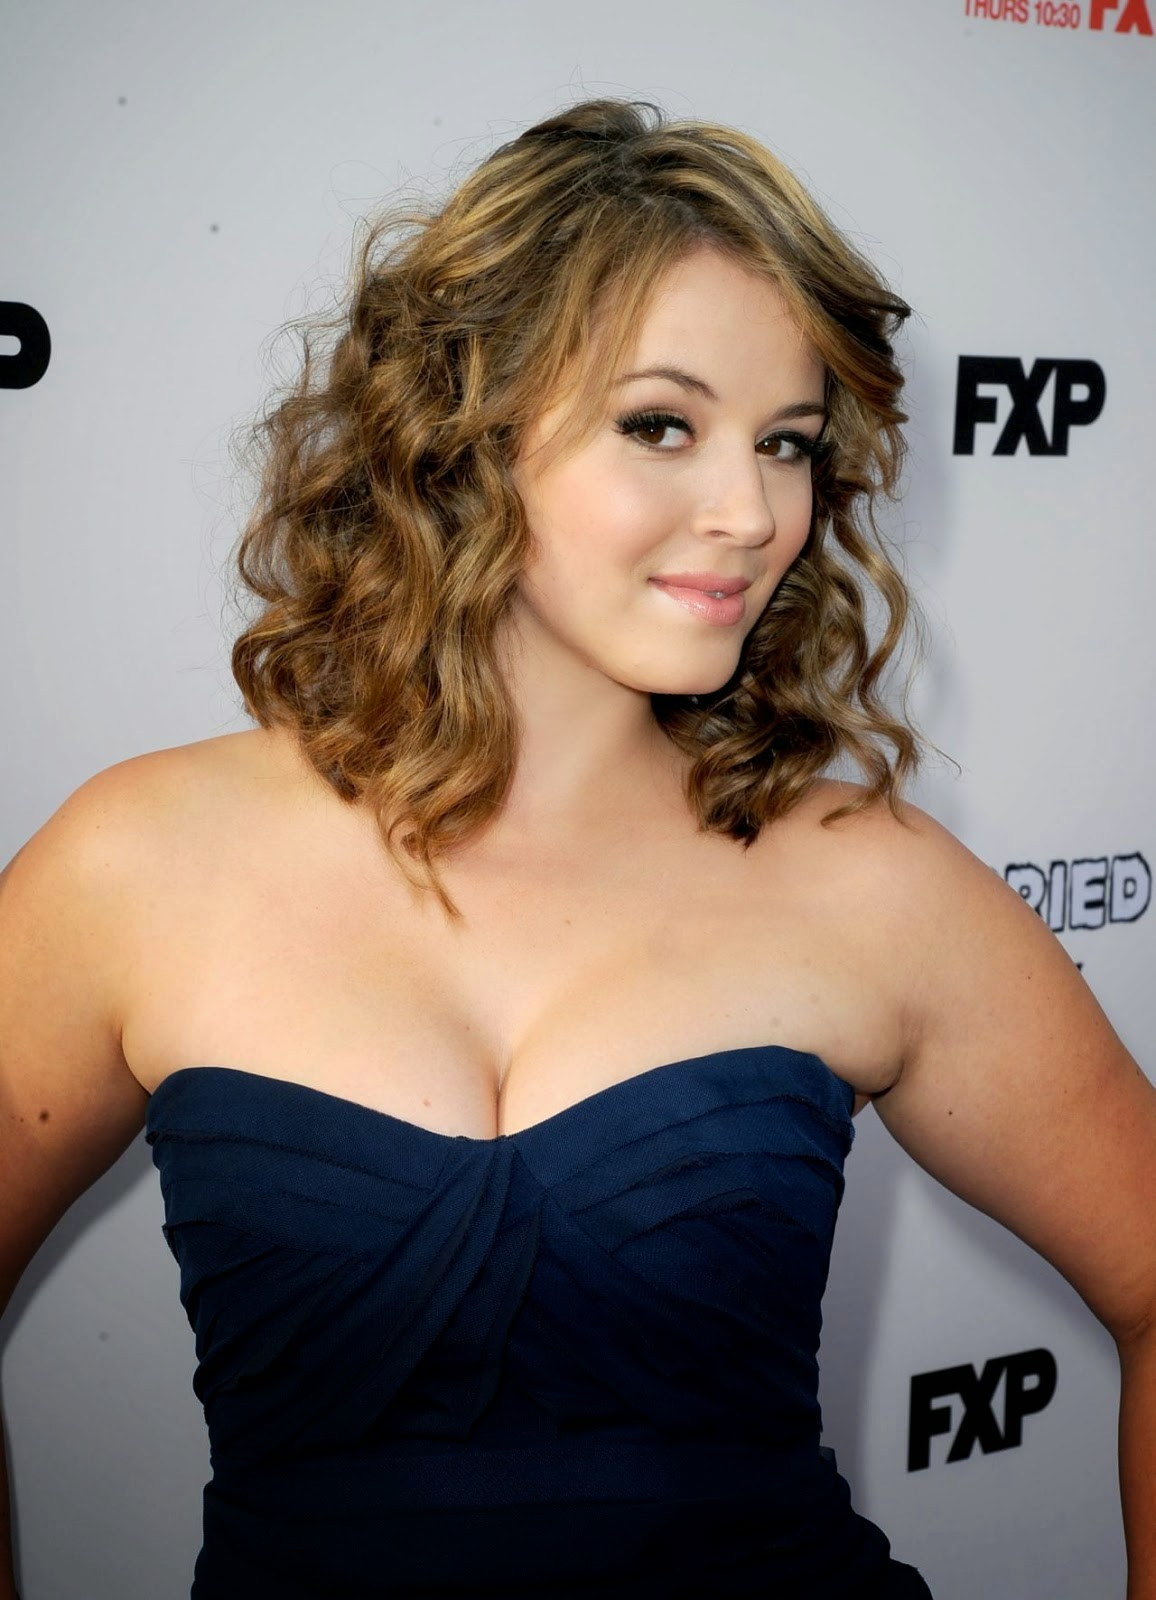 K, Kether Donohue, Kether Donohue Hot images, Actress HD Photo Gallery, HD Actress Gallery, latest Actress HD Photo Gallery, Latest actress Stills, Hollywood, Hollywood actress, Hot Images, Kether Donohue Hollywood Actress Hd Hot Photo Stills